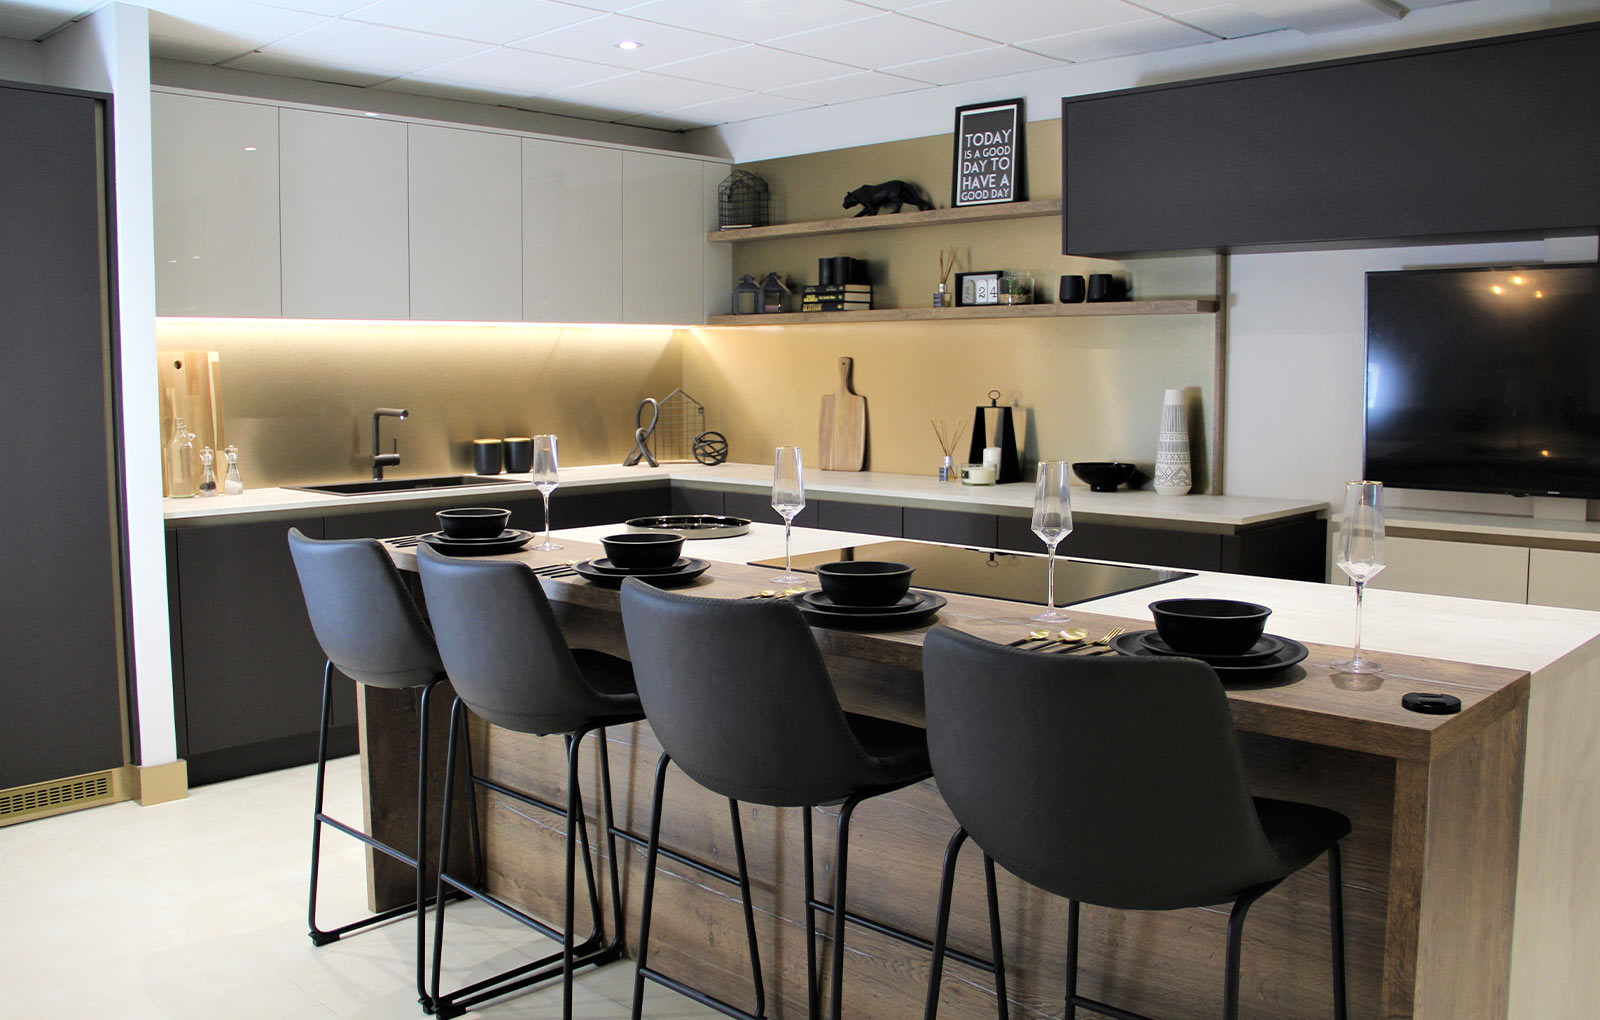 How to Design a Modern Luxury Kitchen (without breaking the bank!) - Kitchen Inspiration Blog ...